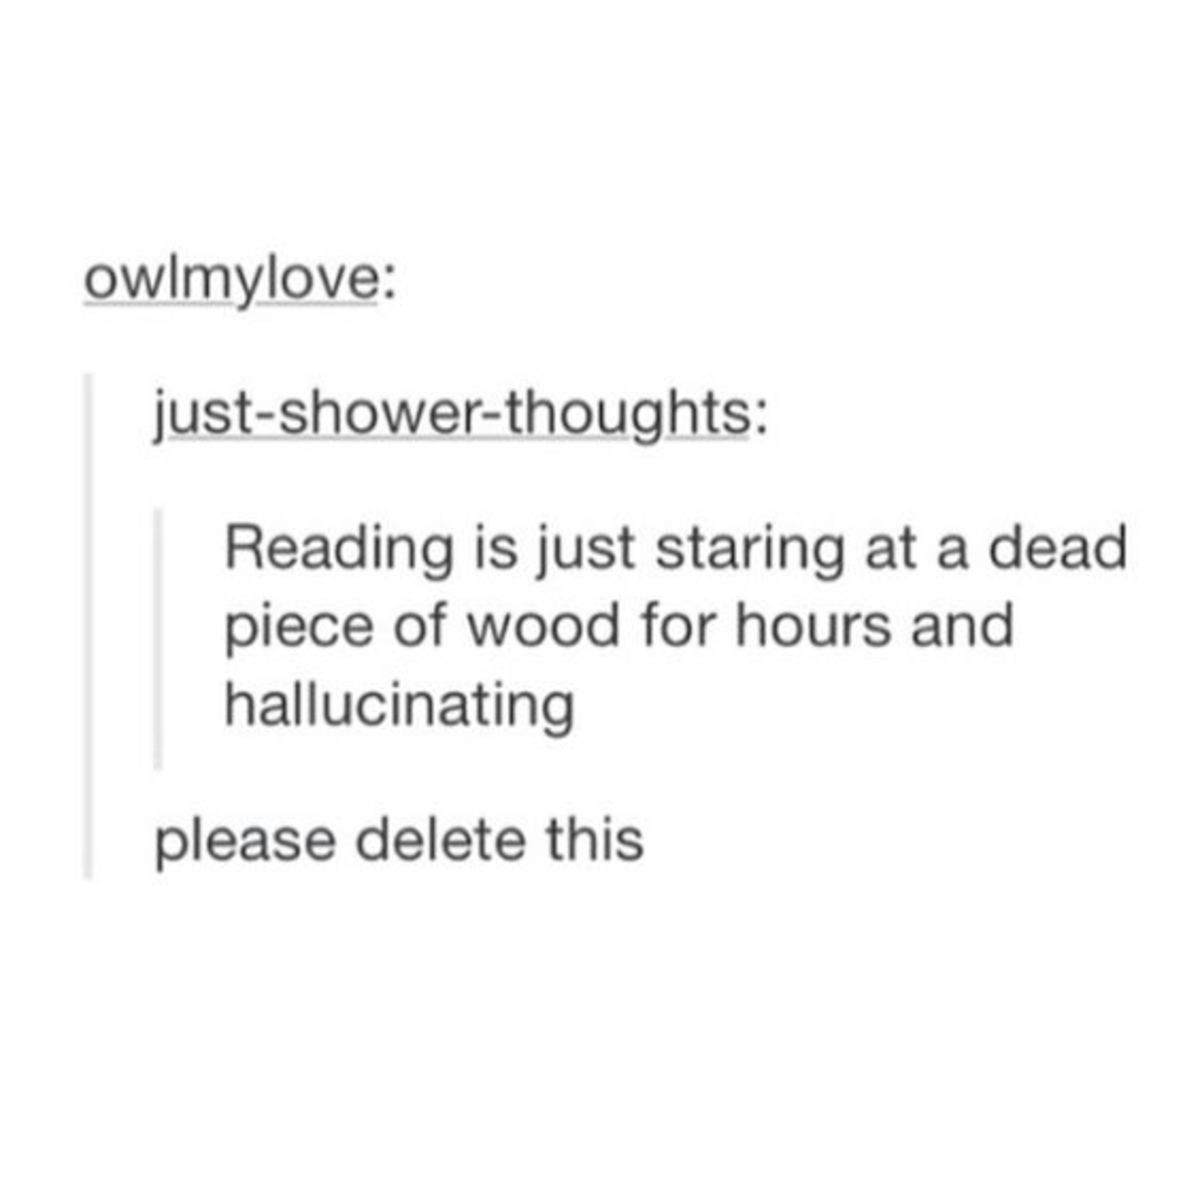 Hallucination. .. Is learning just hallucination? Is remembering thing also hallucination? Based on this standard, is everything that brain does just hallucination?